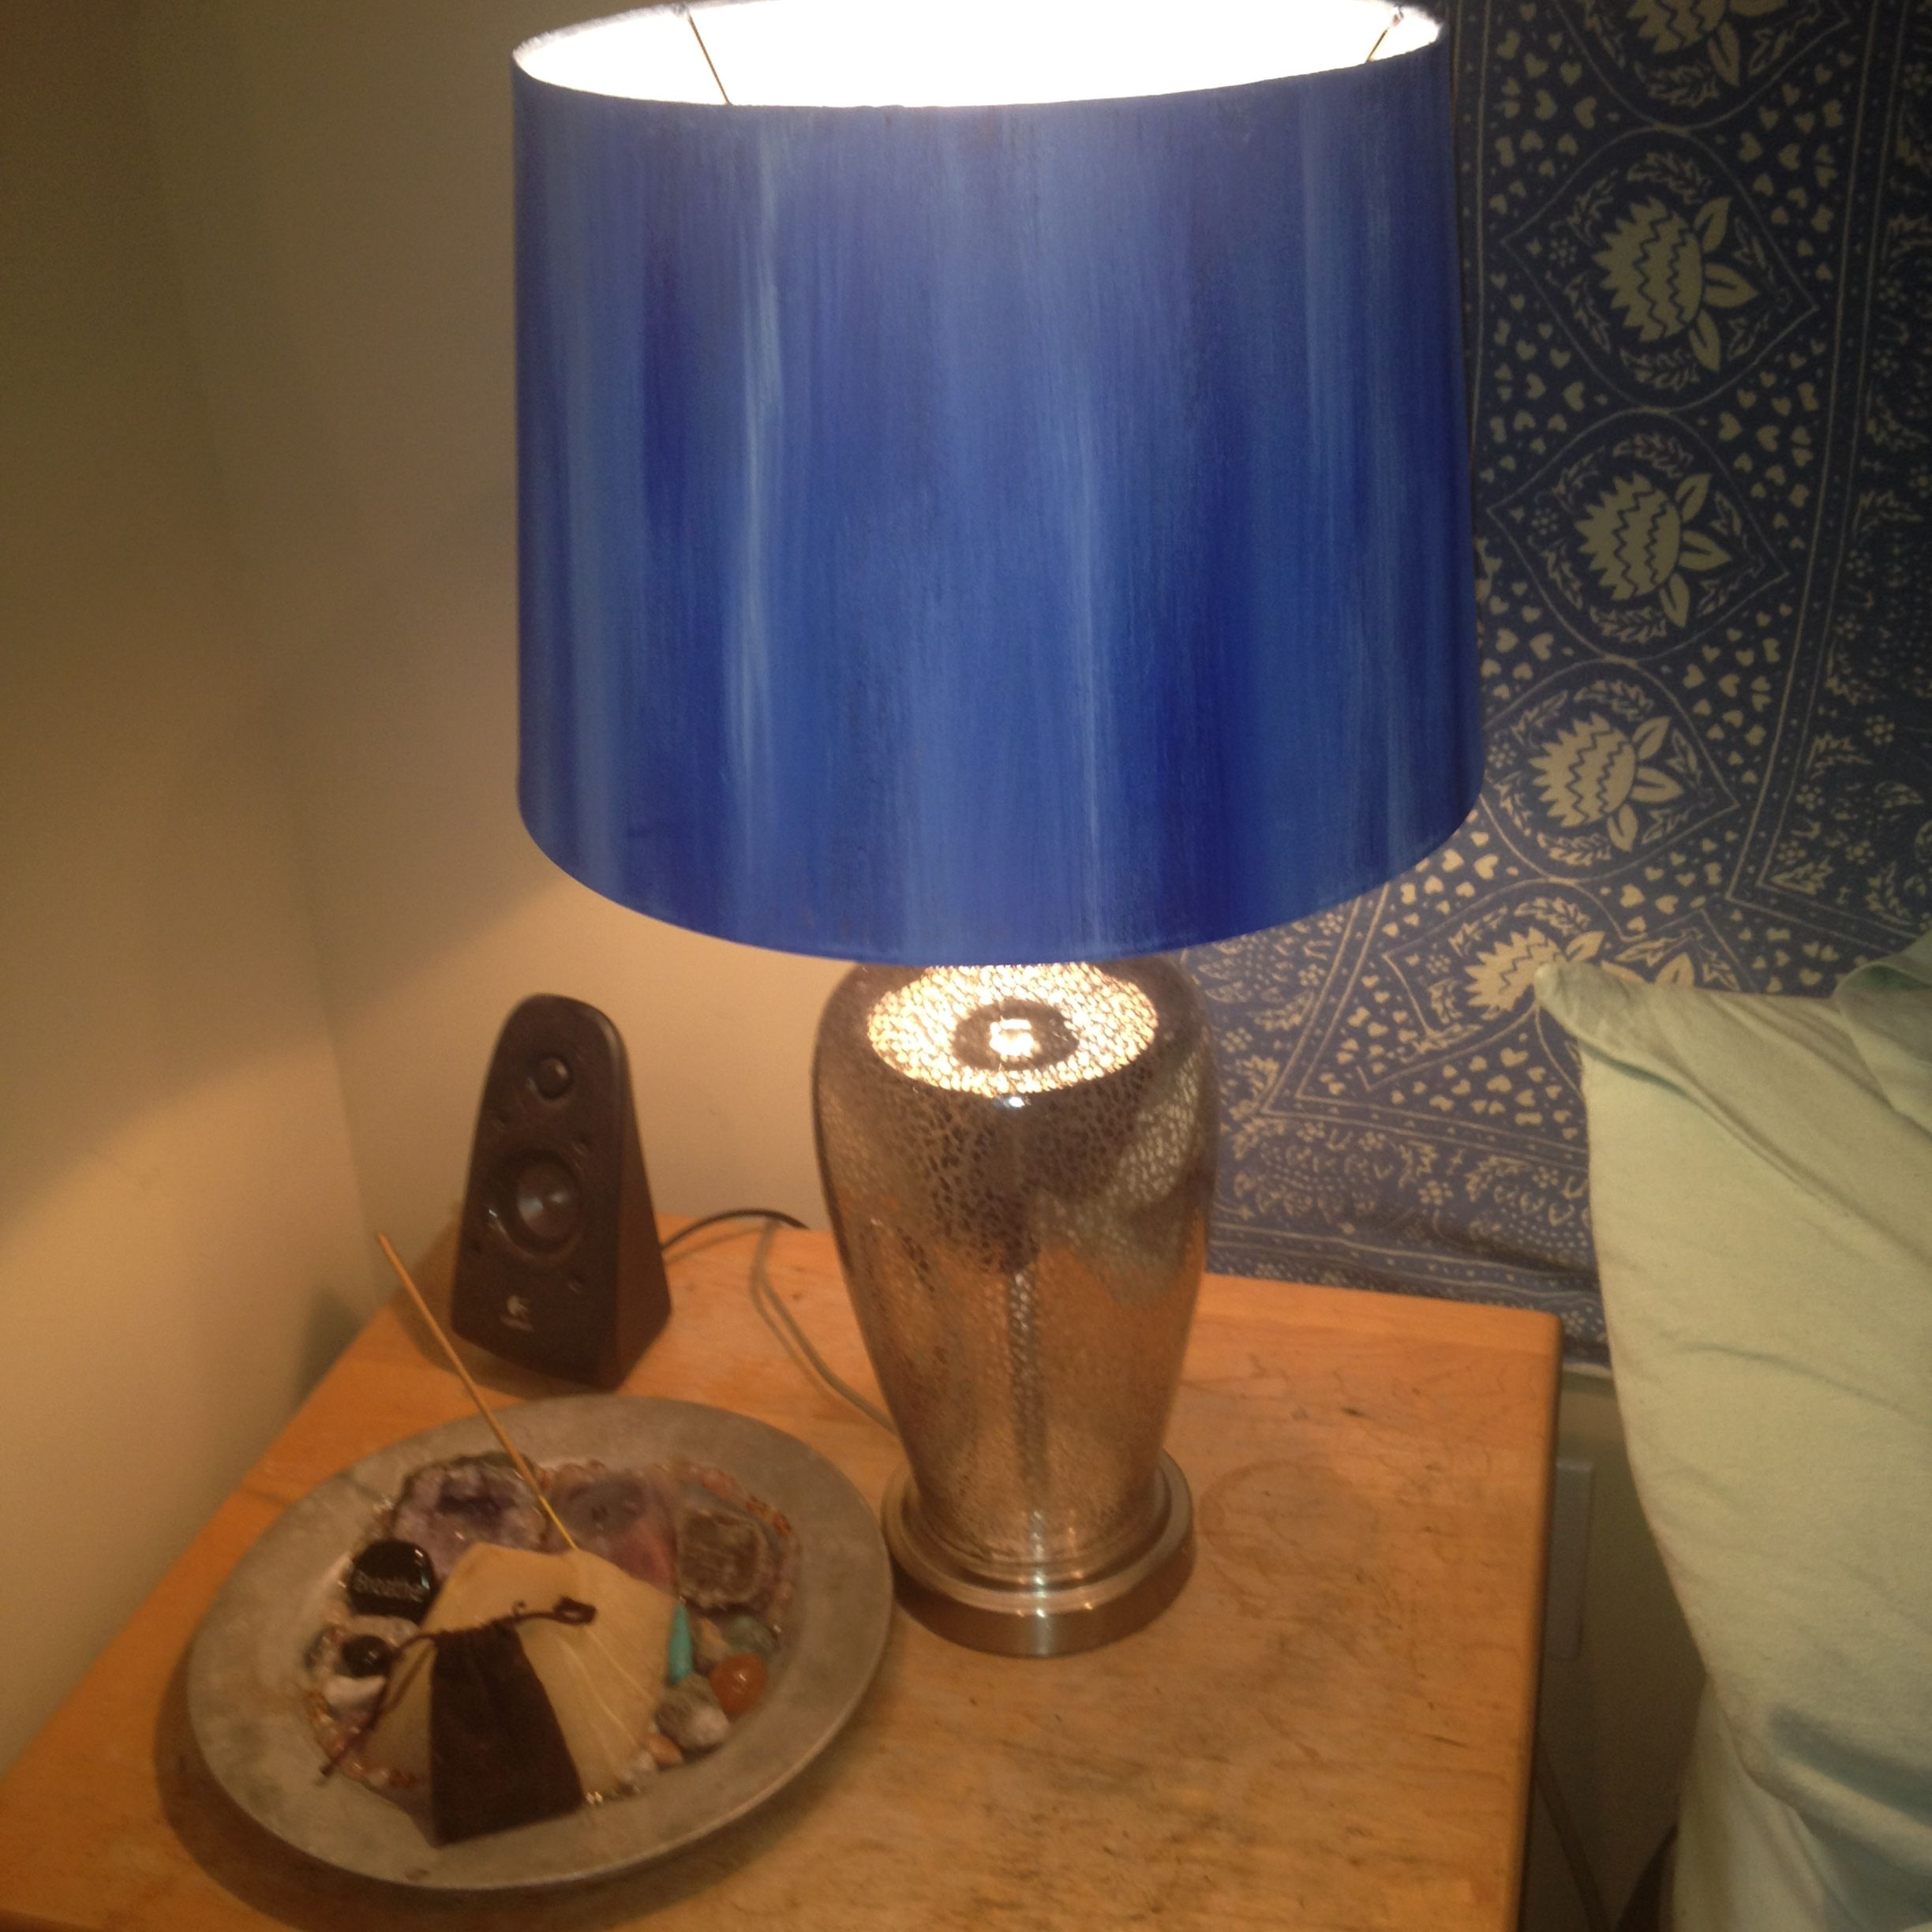 I was bored with the desk lamp I had next to my bed, so I found a cool lamp base, painted an old gross lampshade and voila! DIY success!  Simply thrift around, find a lamp you love with any fabric lampshade. Buy fabric paint (I only used blue and white and messed around with different shades to create a palate of my choice).  Get a paint brush.   I painted with strokes up and down with the dark blue in patches all around the lampshade, then gradually blended the other light blues and white…